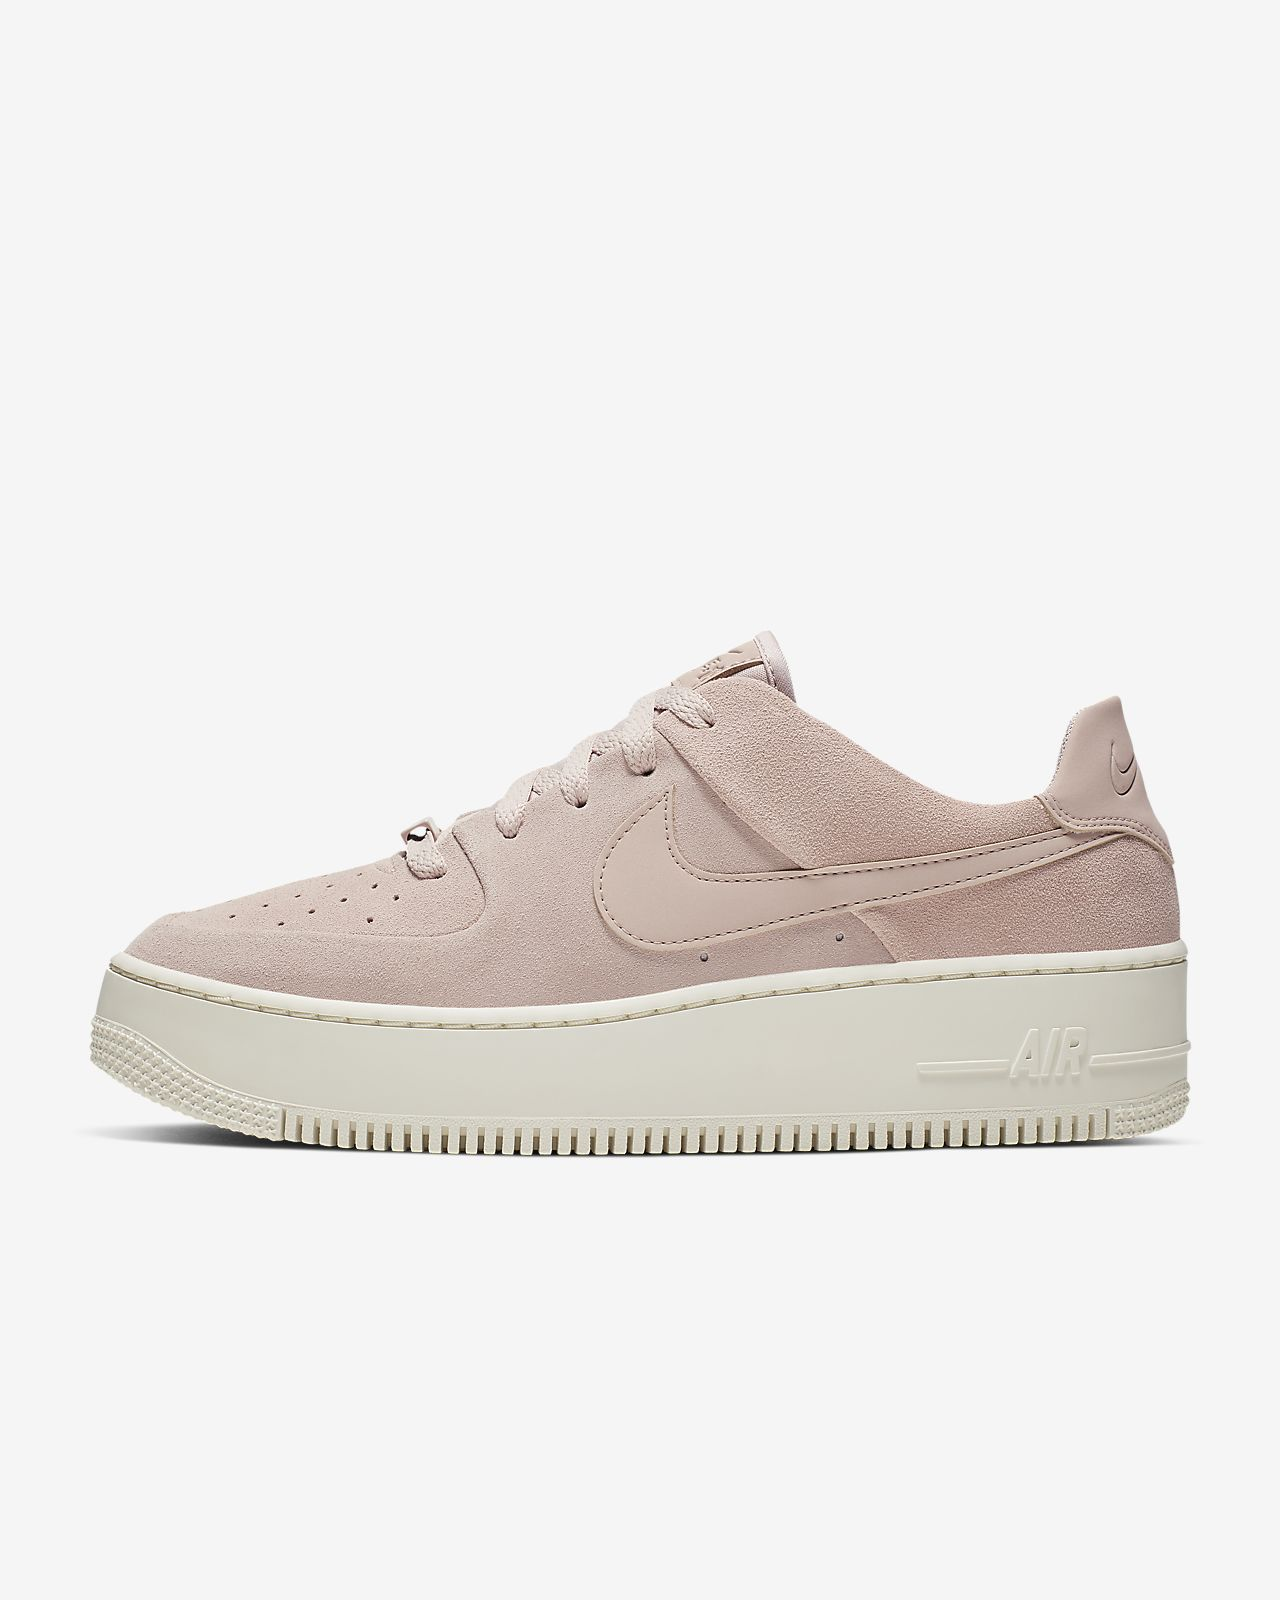 quality design 9bf72 10b21 ... Nike Air Force 1 Sage Low Womens Shoe